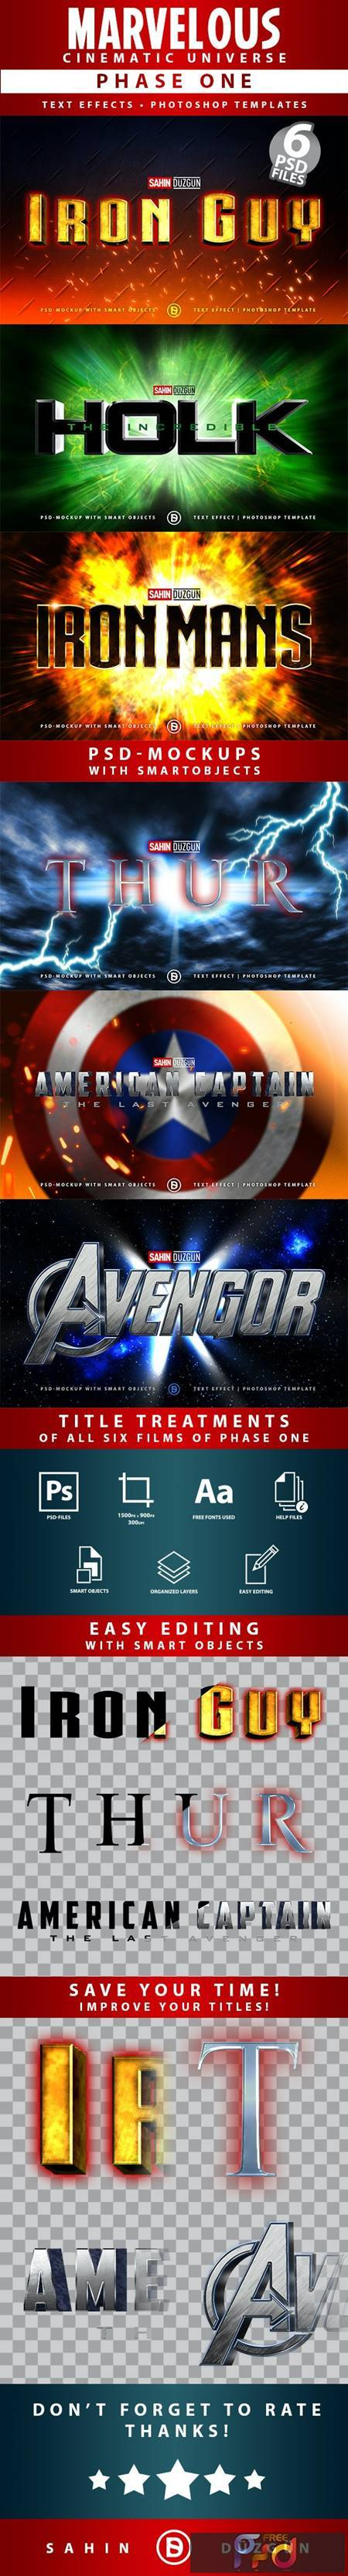 Marvelous Cinematic Universe - Phase One 26501528 1